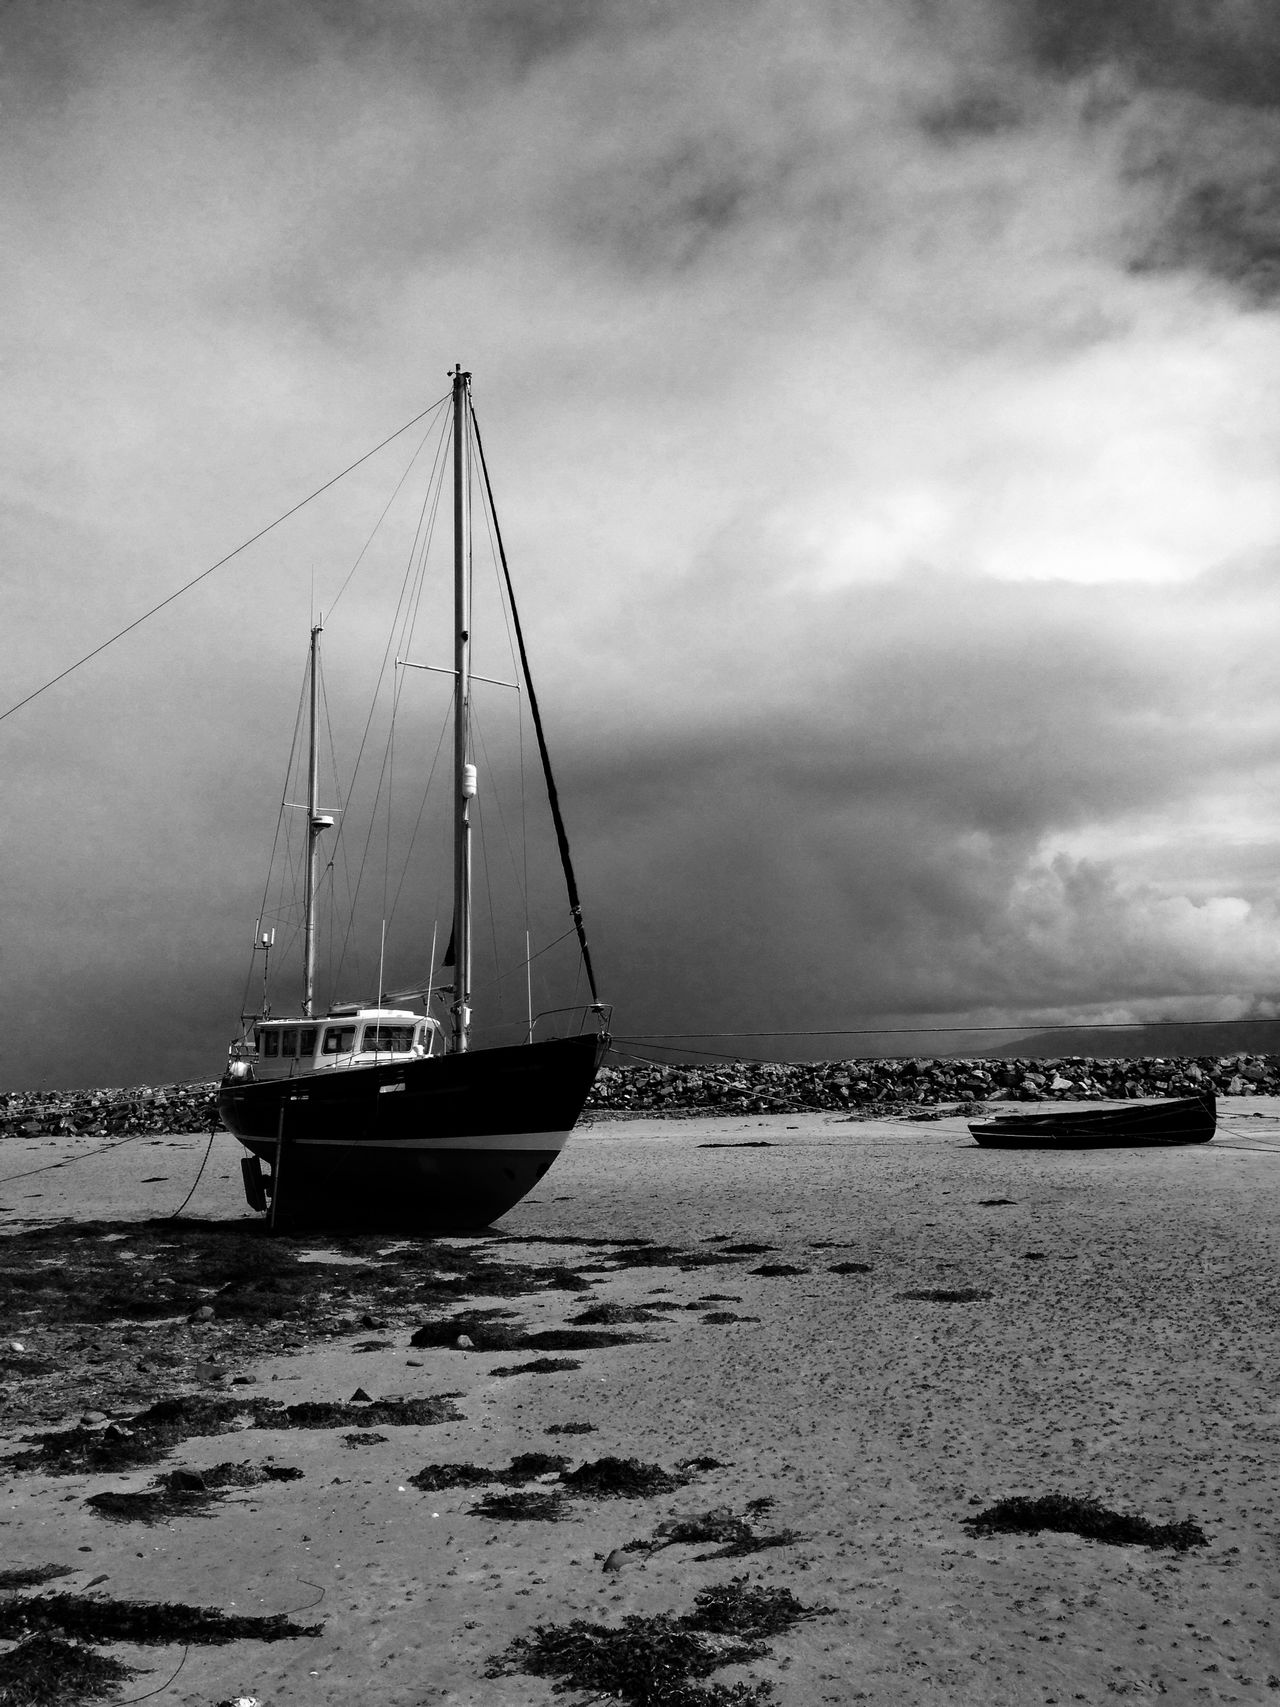 """Storm rolling in"" EyeEm Best Shots - Black + White EyeEm Best Edits NEM Submissions Every Picture Tells A Story EyeEm Gallery EyeEm Best Shots The Great Outdoors - 2015 EyeEm Awards"